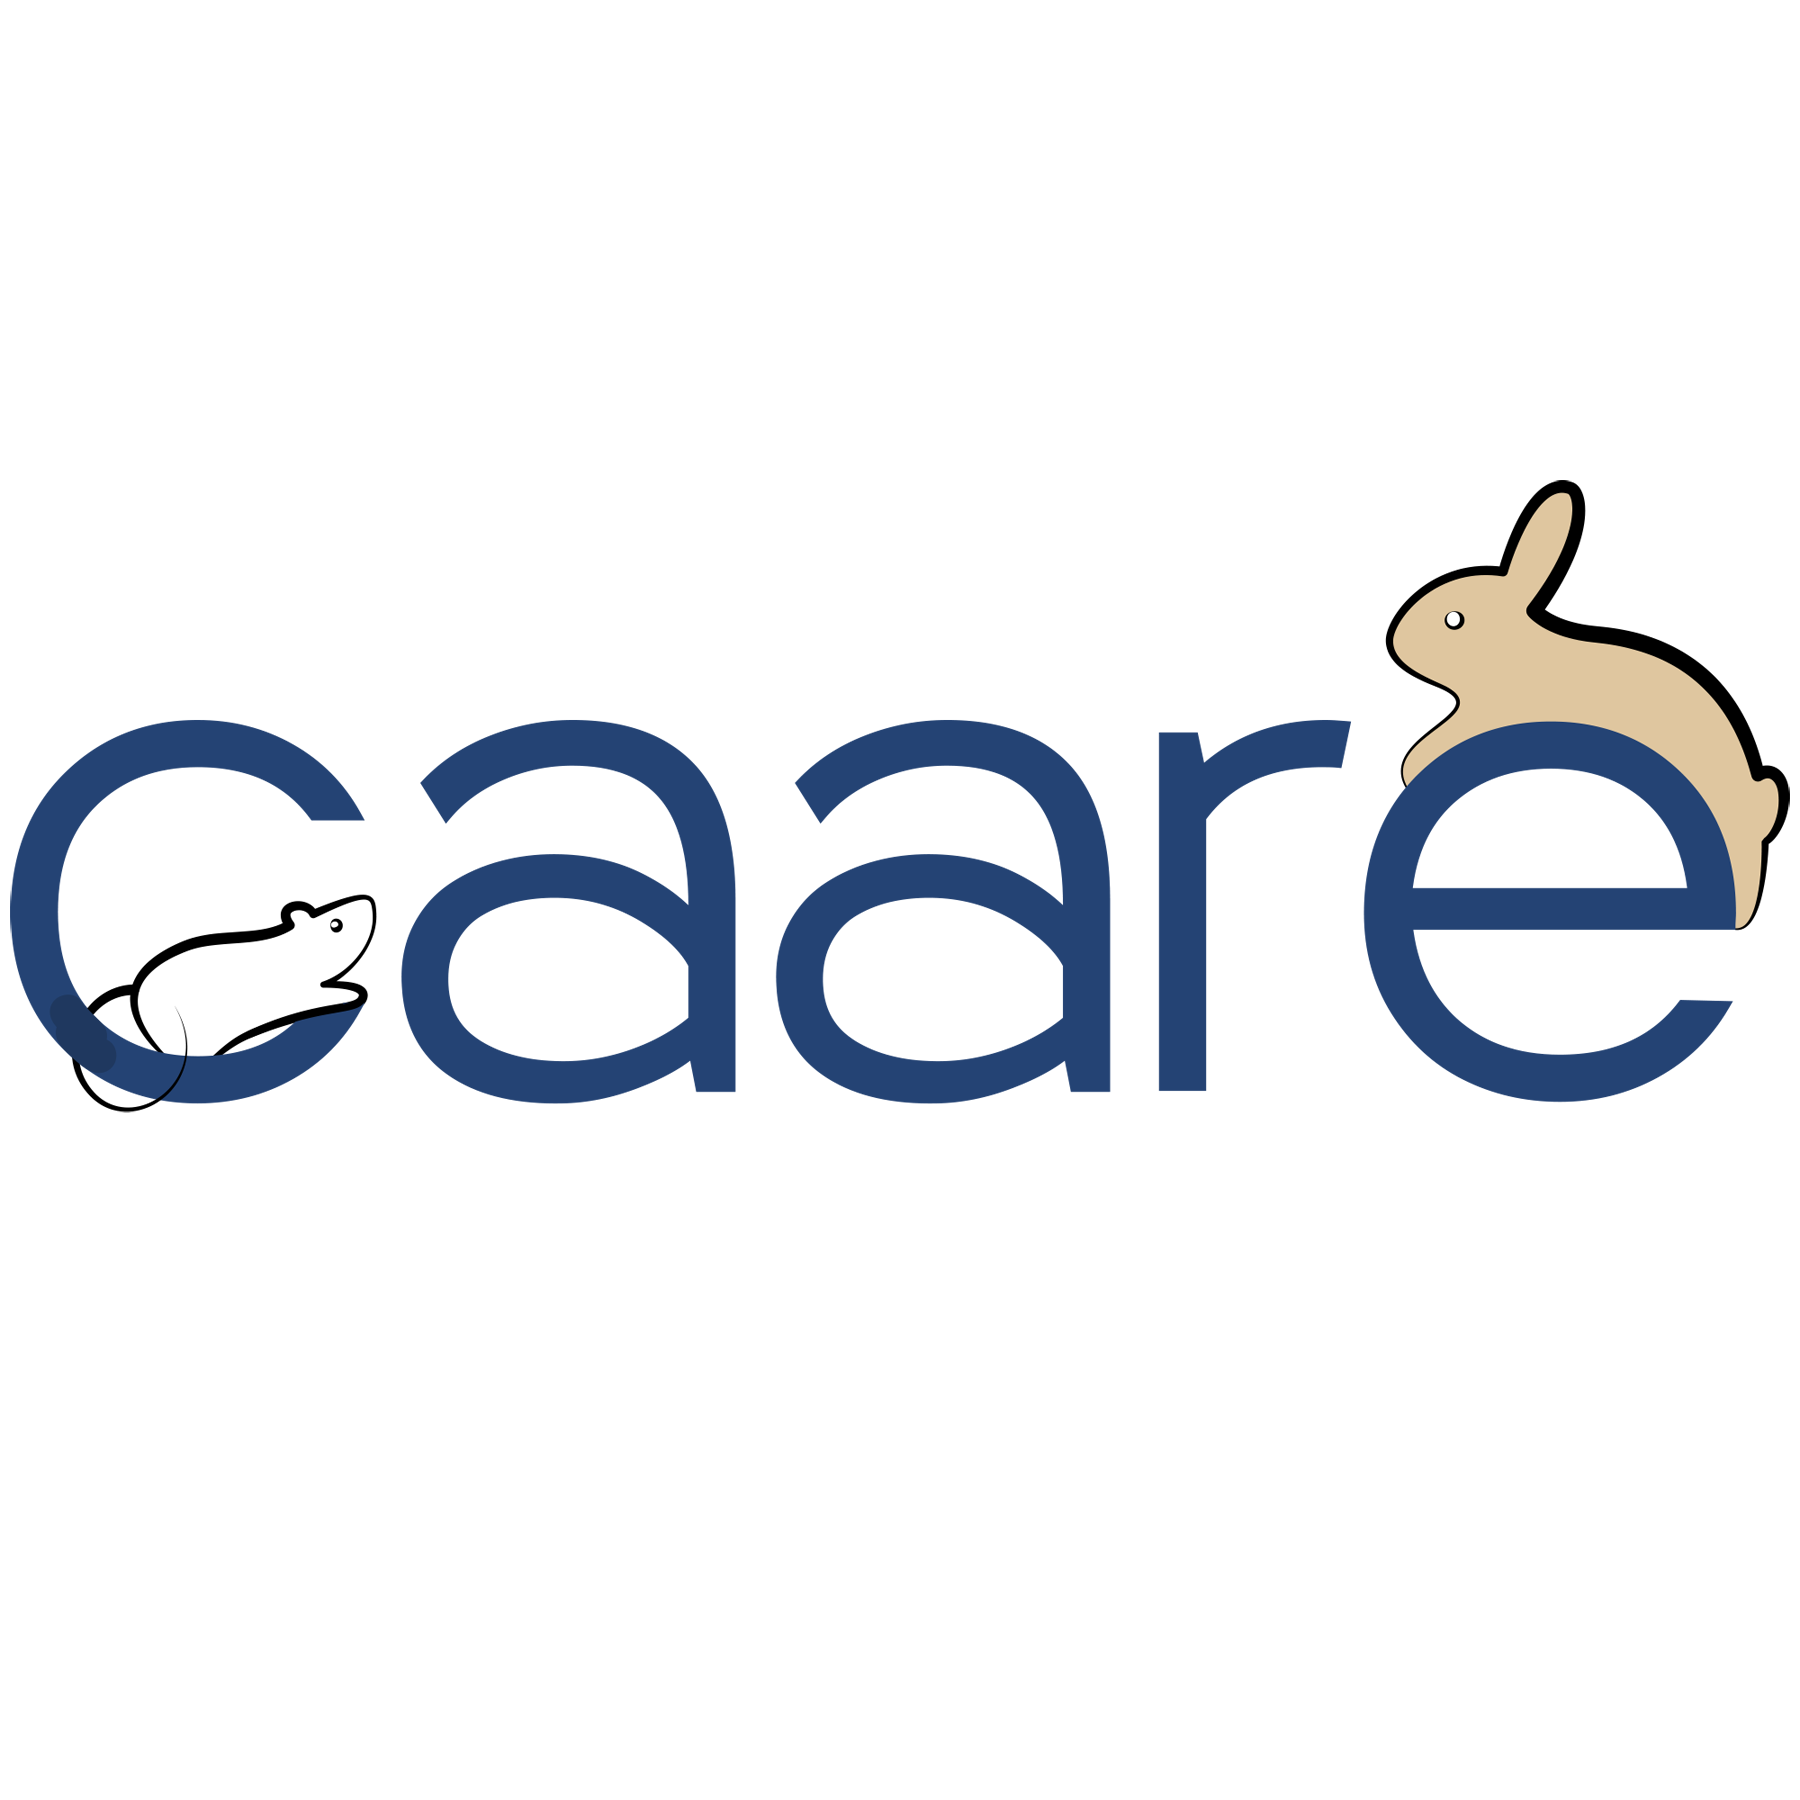 Citizens for Alternatives to Animal Research and Experimentation (CAARE)